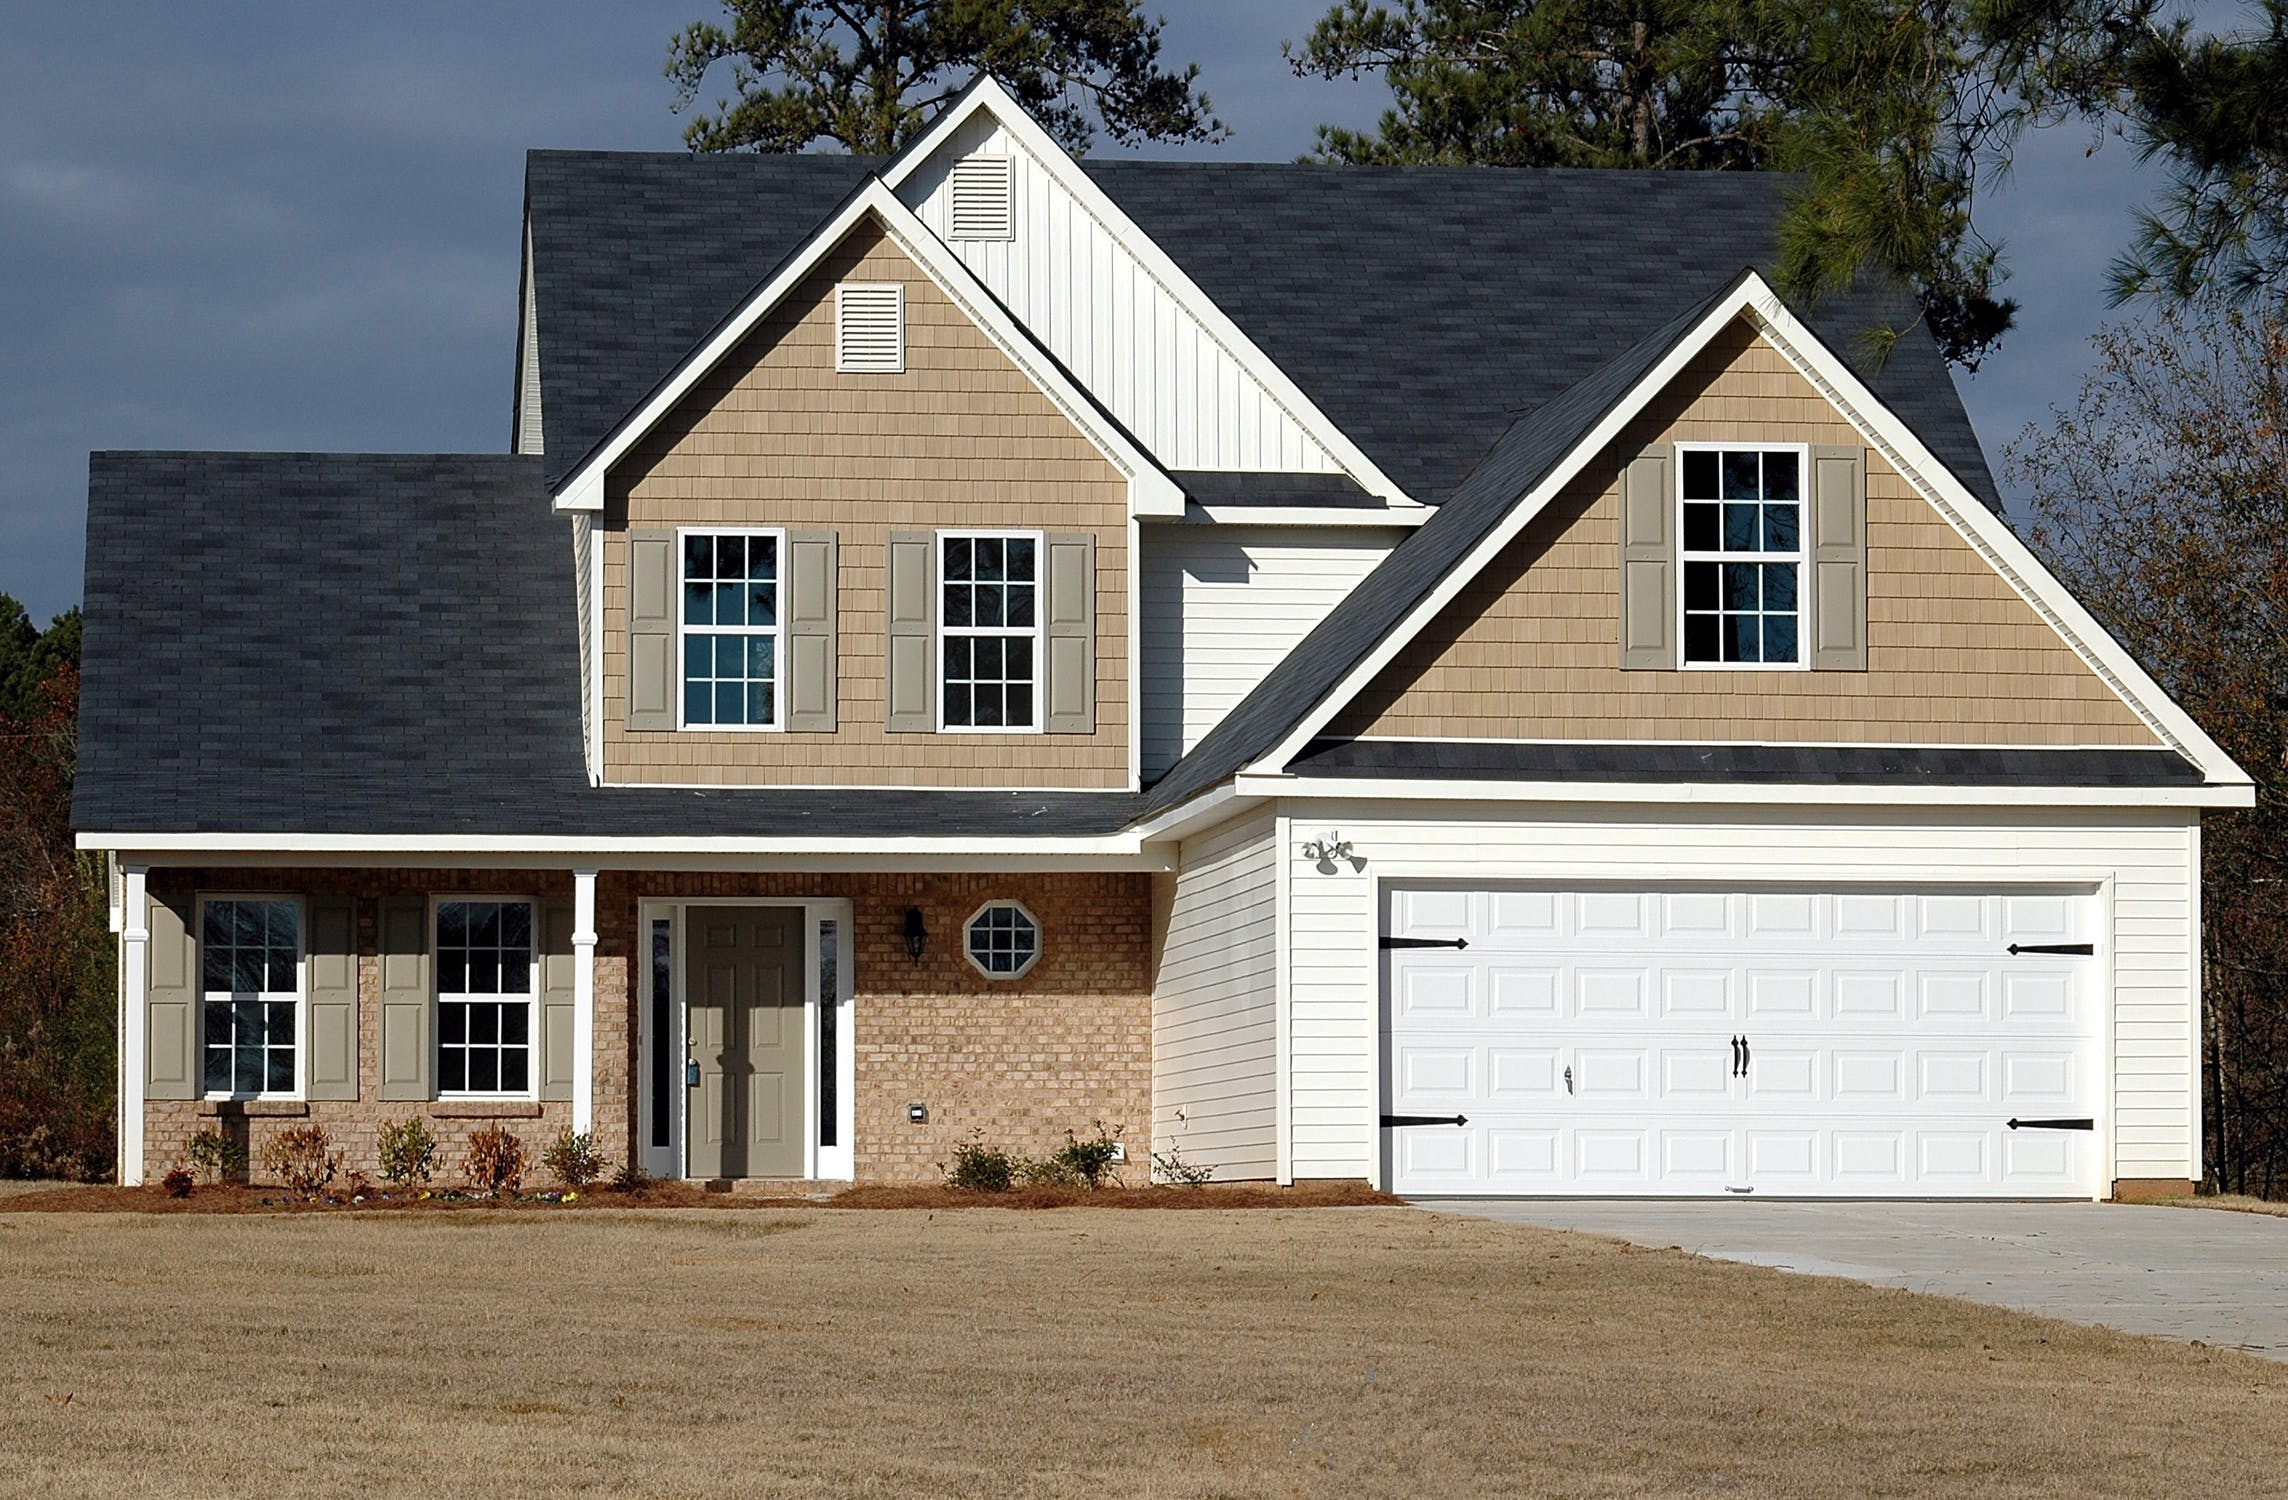 Garage Doors Trends in Houston